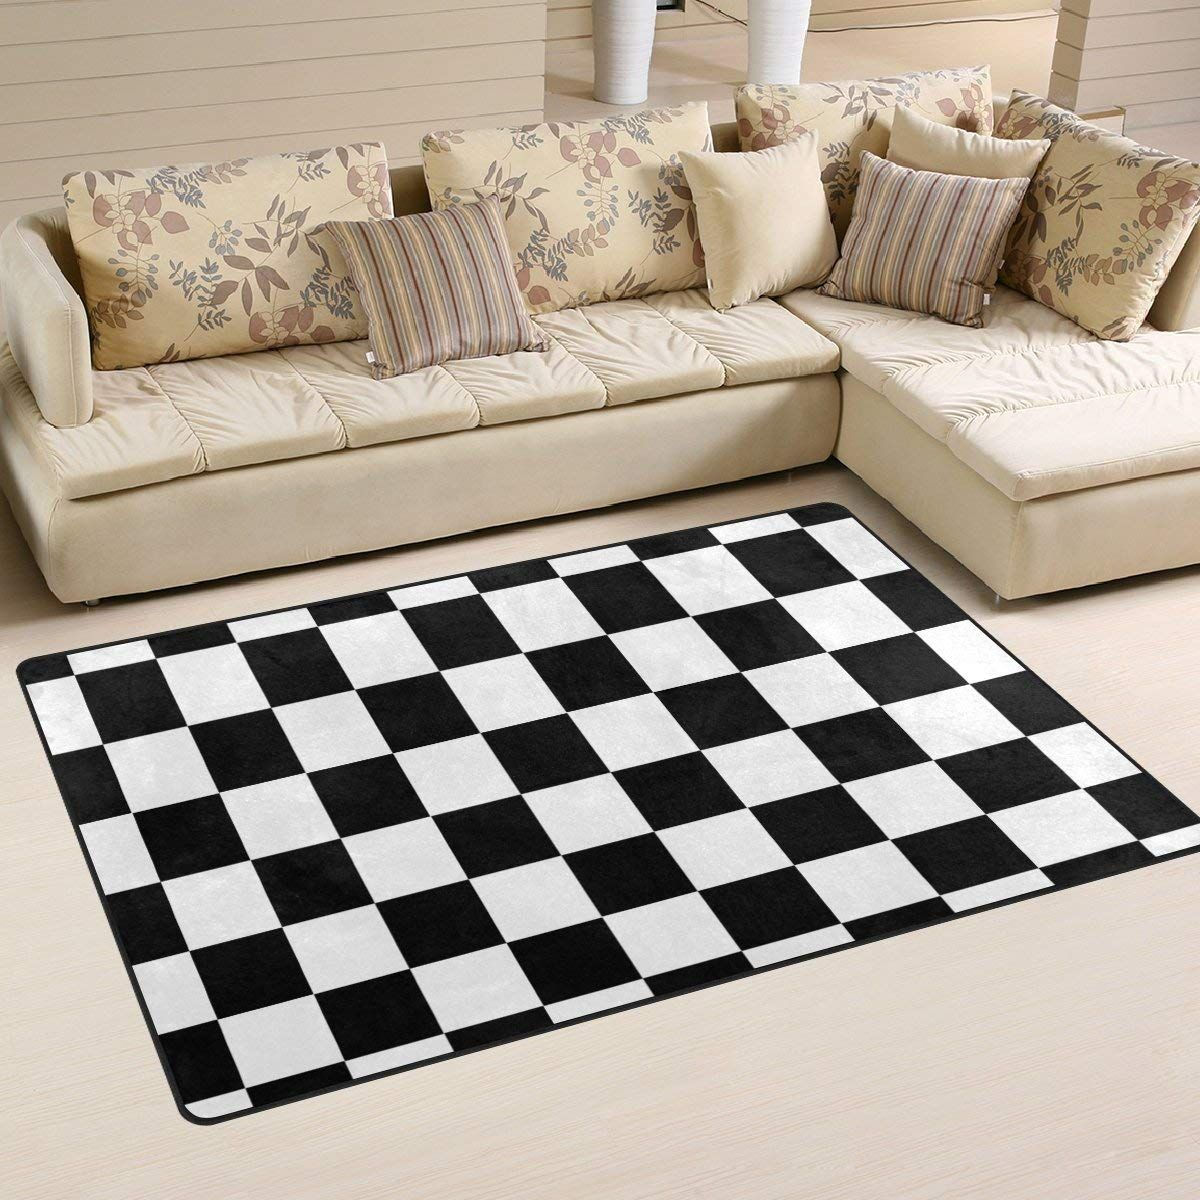 Checkered rug rugs on carpet area rugs area rug pad